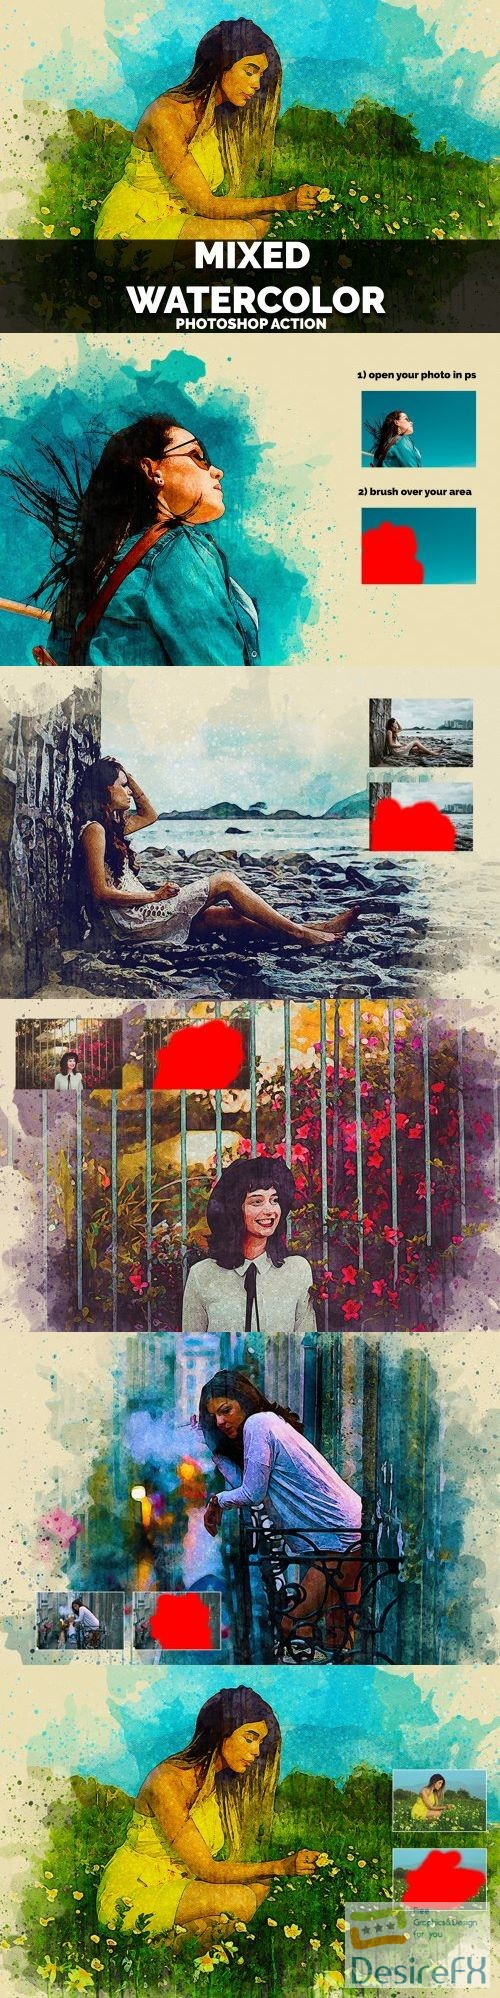 actions-atn - Mixed Watercolor Photoshop Action 3857279